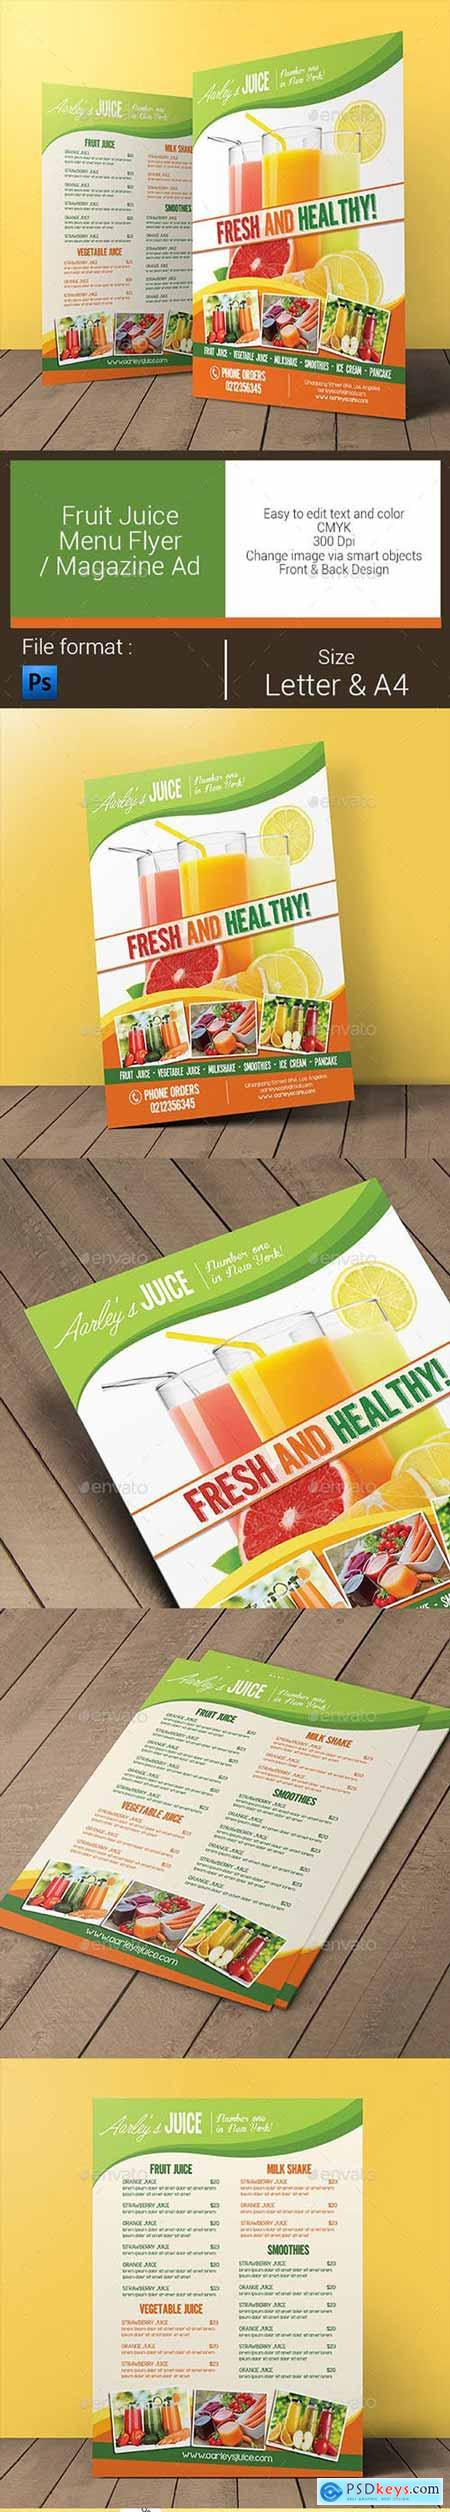 Fruit Juice Menu Flyer Magazine Ad 11027875